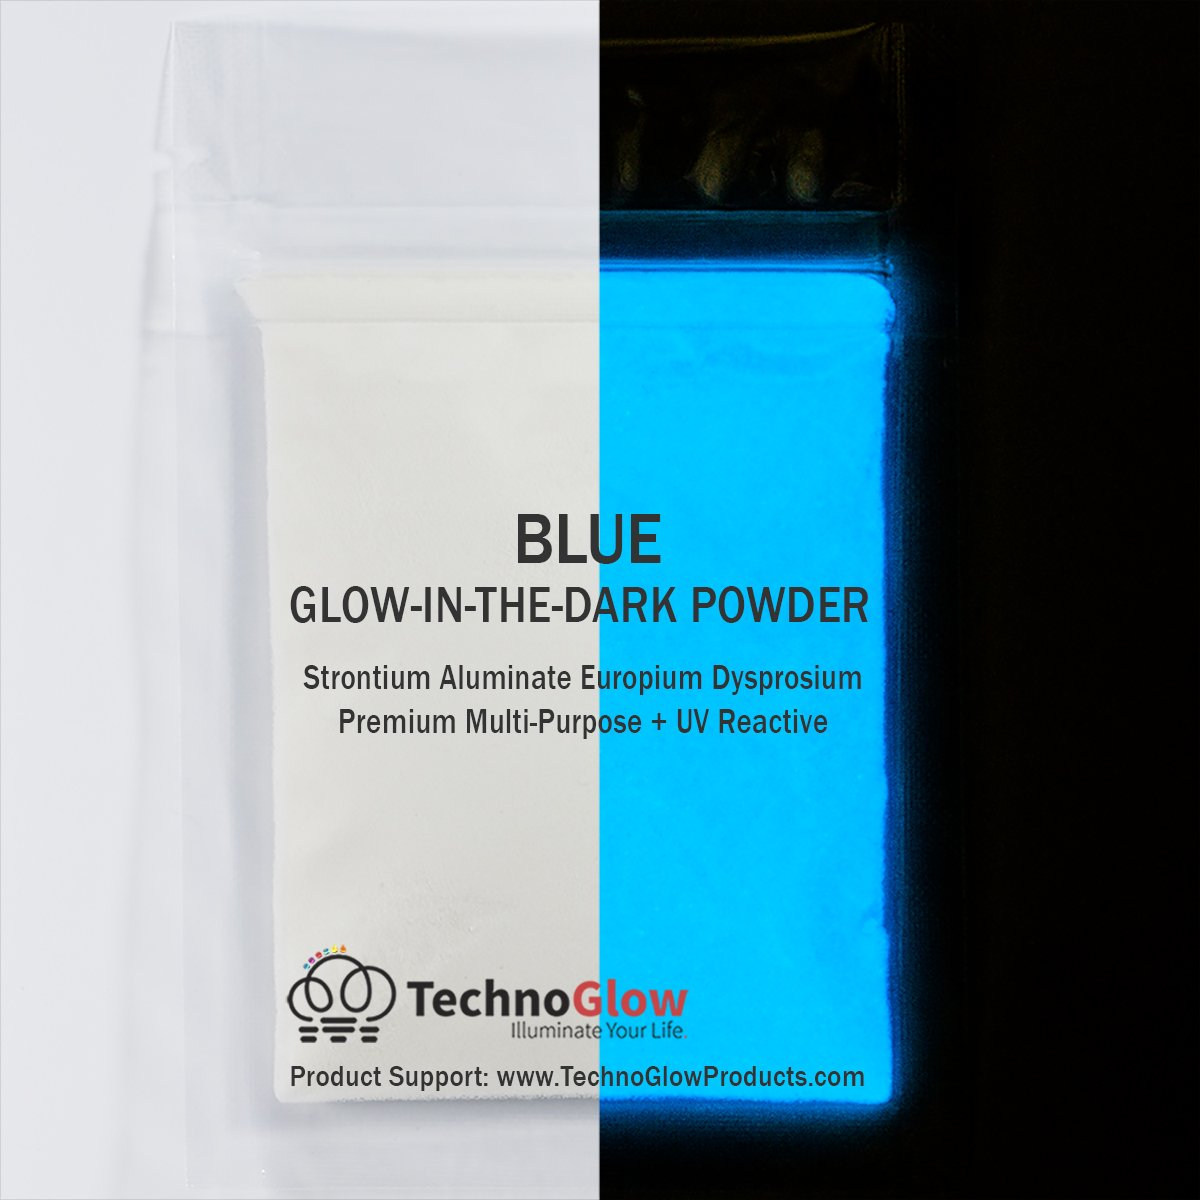 Blue Glow in the Dark Powder 1 Kilogram (2.2 Pounds)